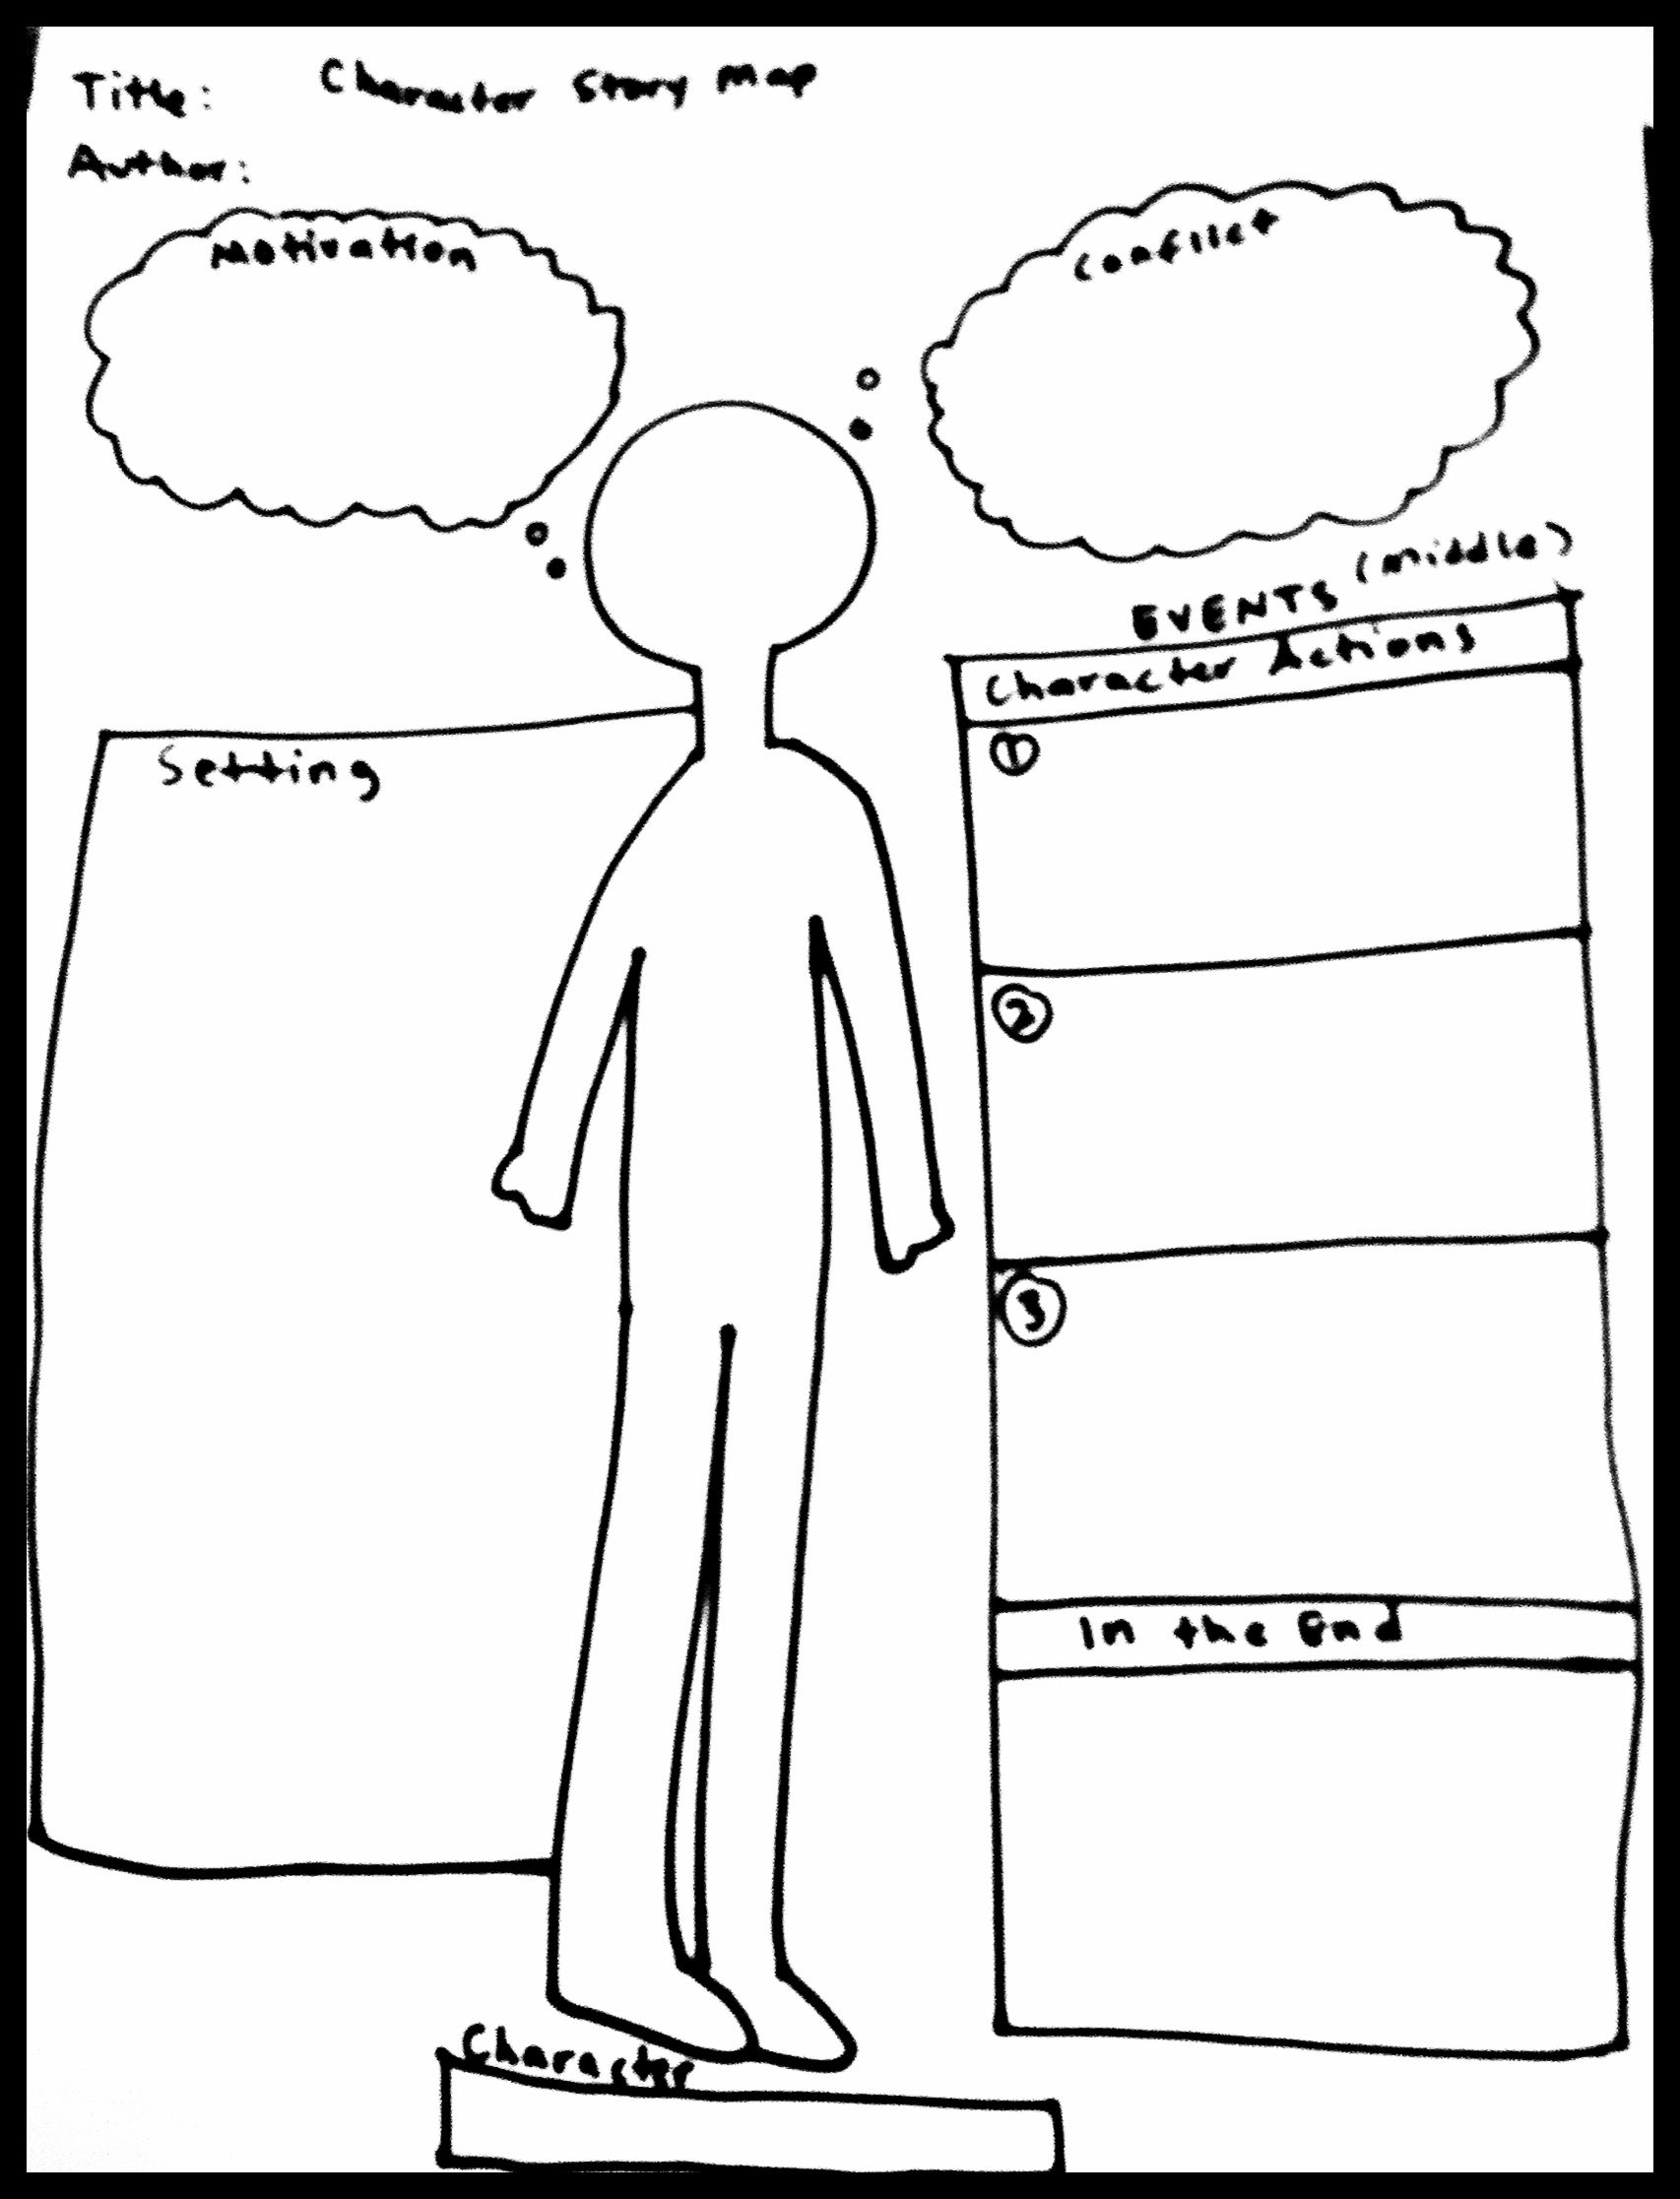 000 narrative character plot Literacy Graphic organizers